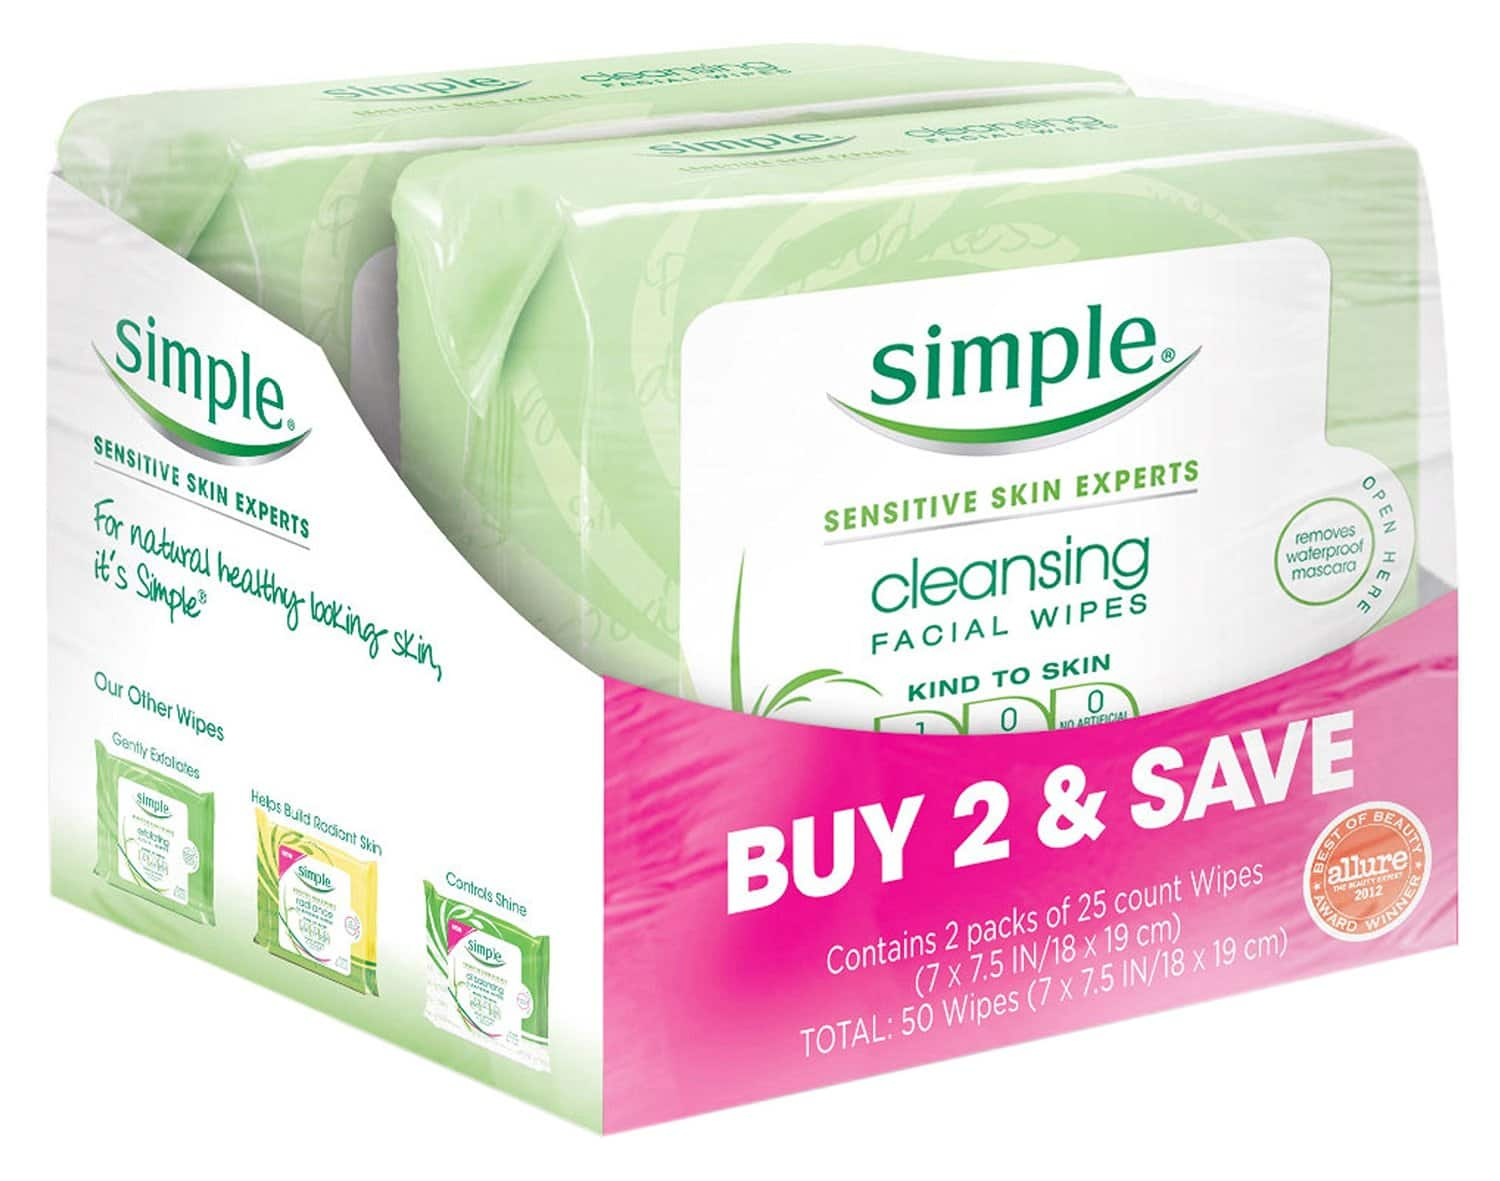 50-ct. Simple Cleansing Facial Wipes (Kind to Skin)  $5.85 + Free Shipping